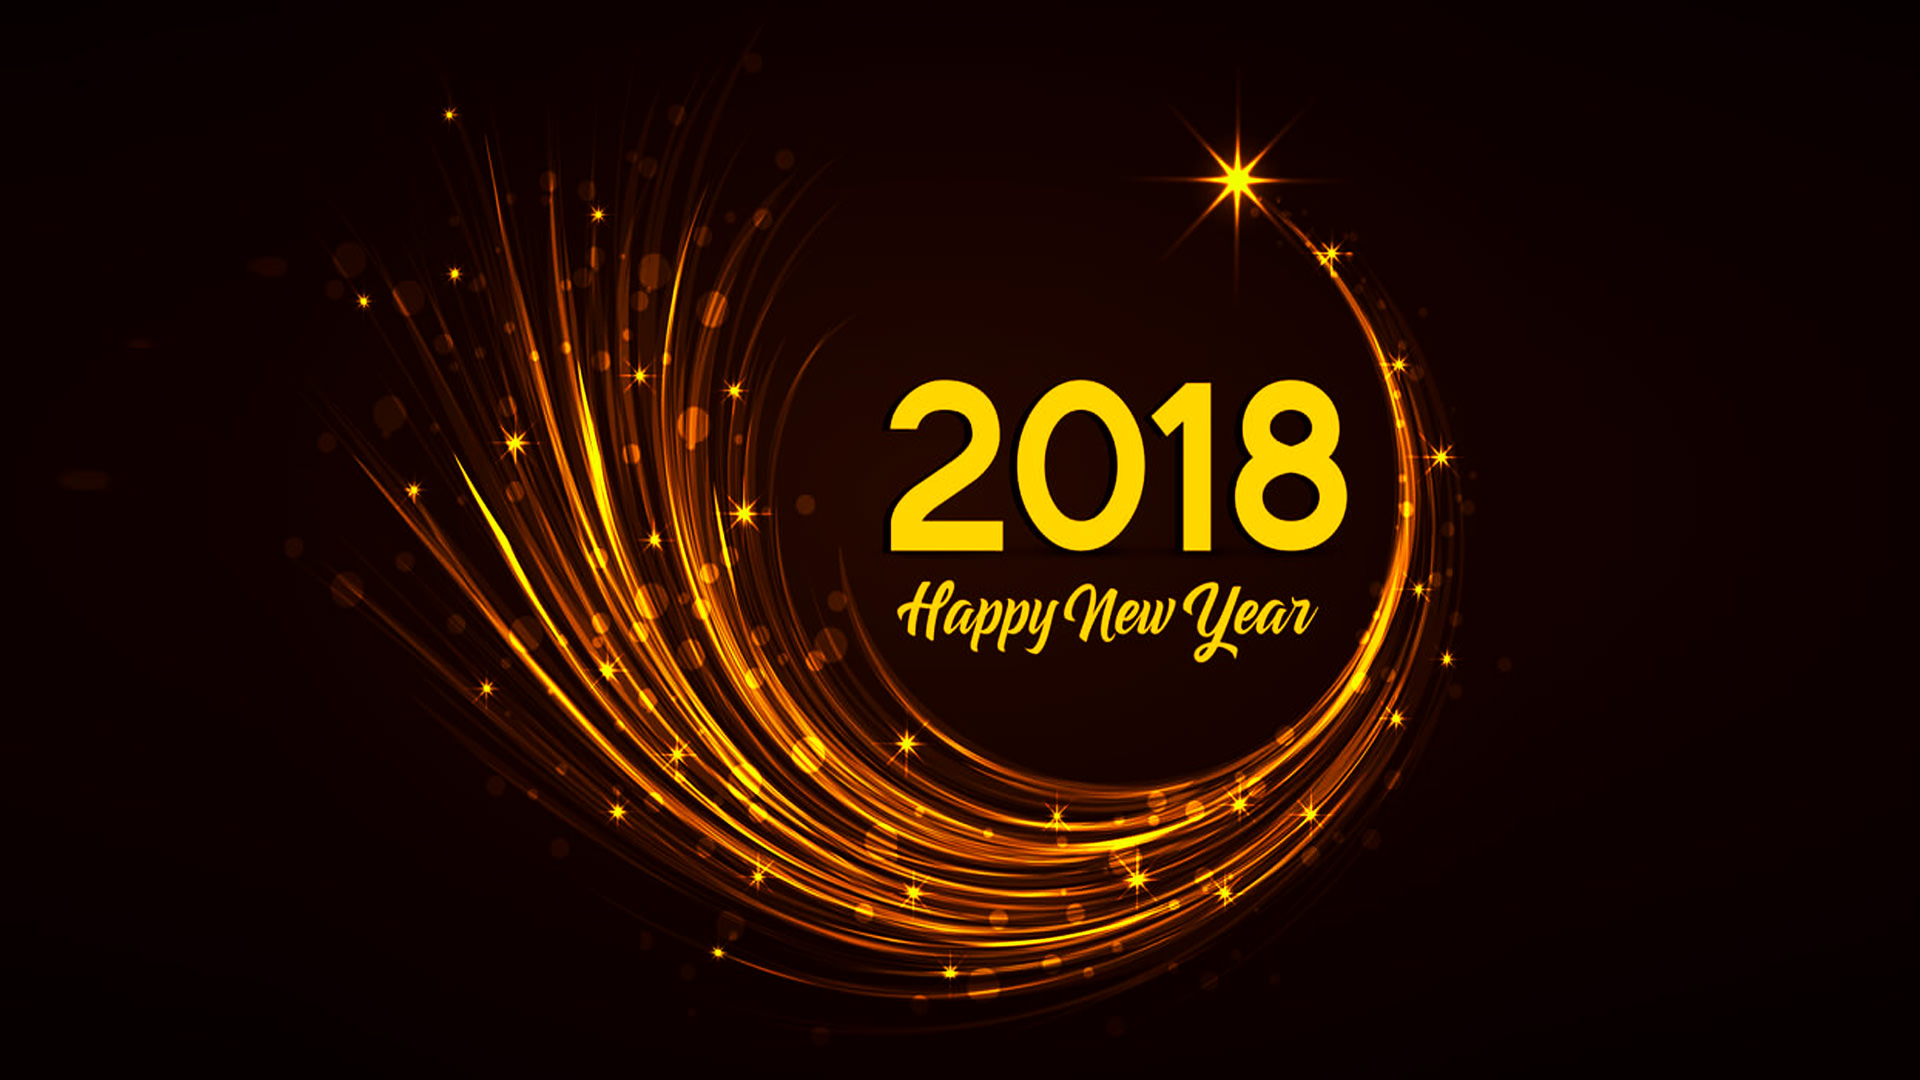 Special Happy New Year Wallpaper Hd Greetings